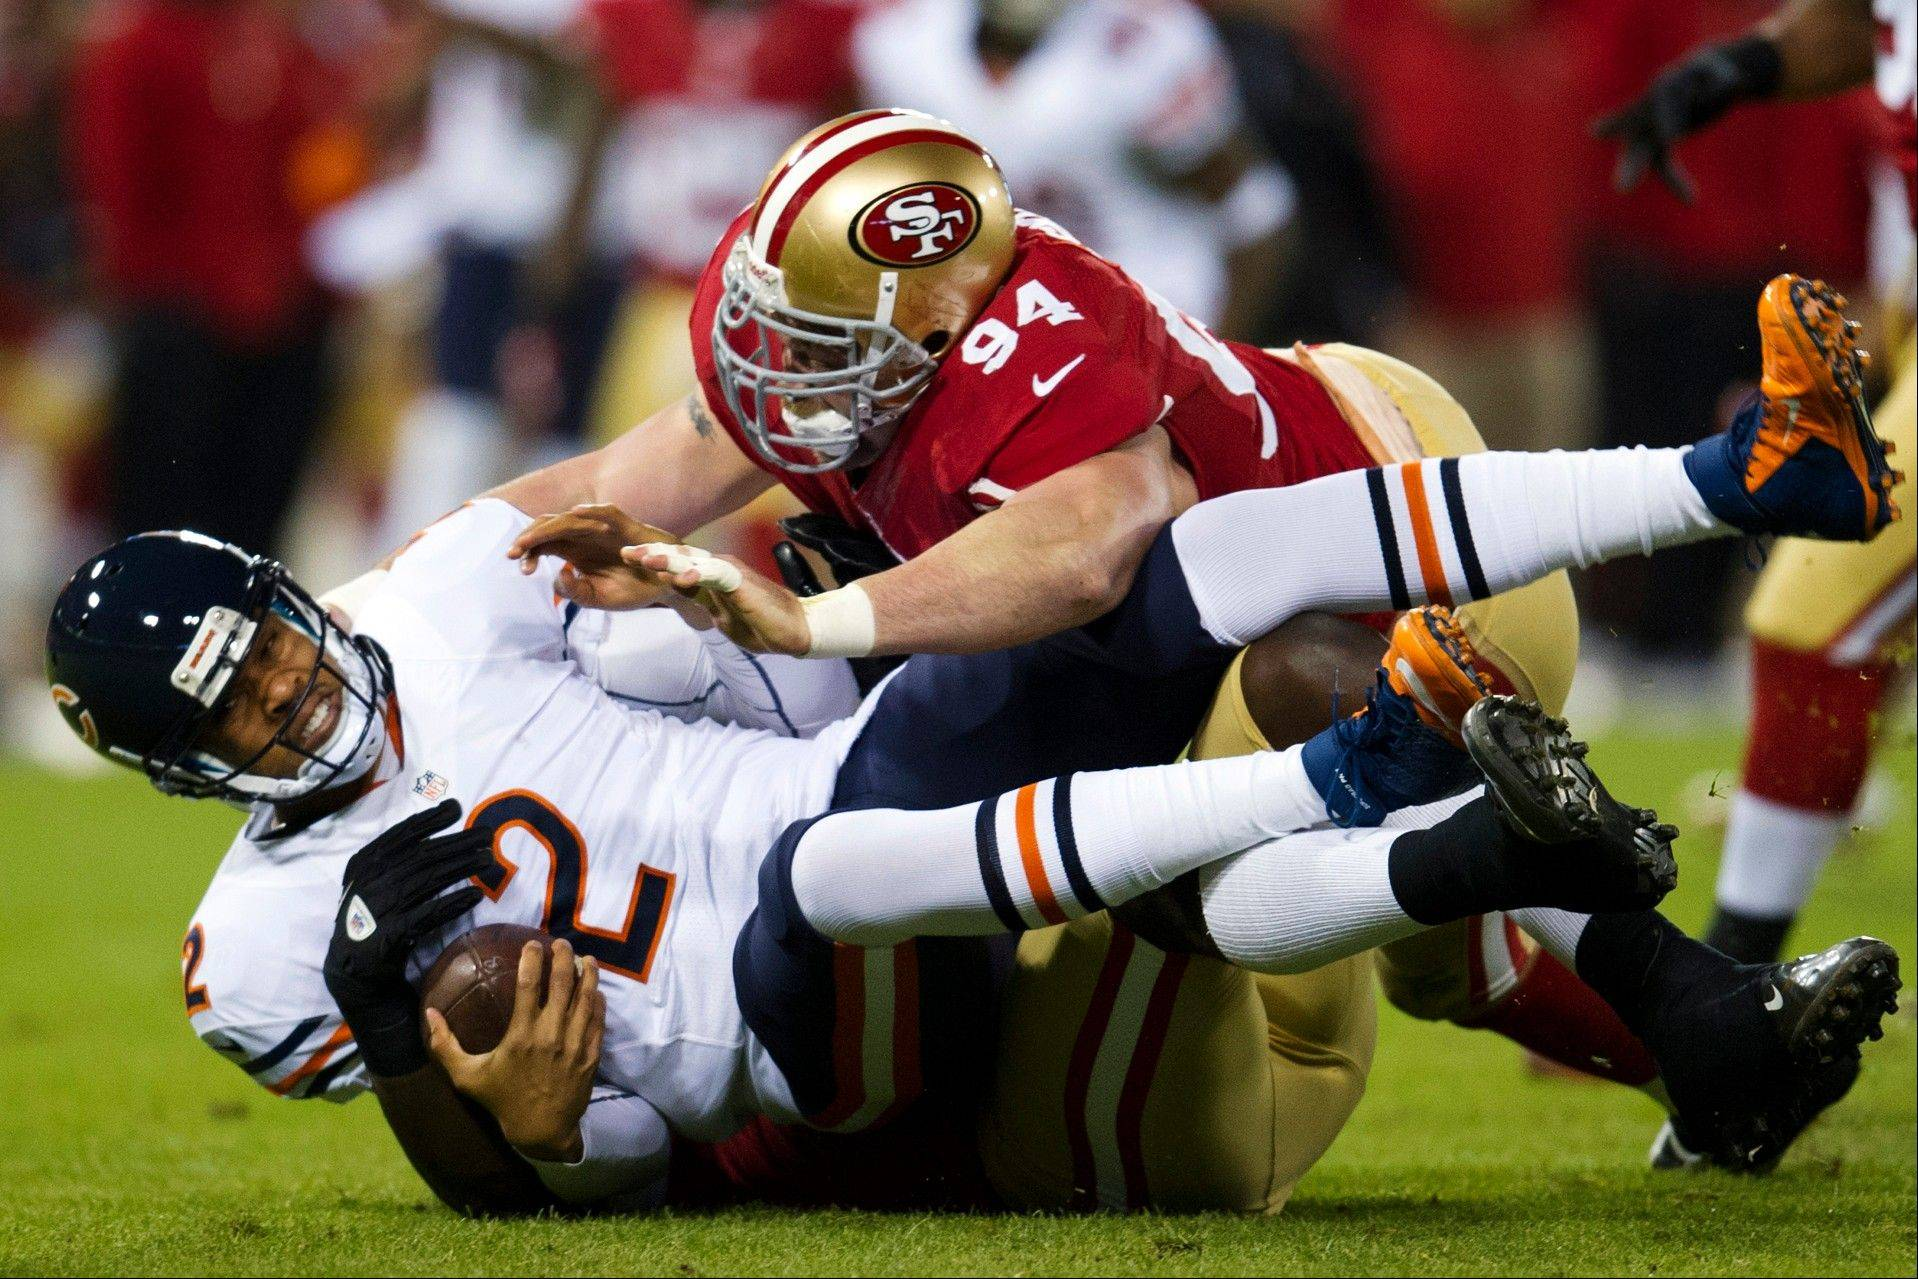 San Francisco 49ers outside linebacker Aldon Smith, obscured, and defensive end Justin Smith sack Bears quarterback Jason Campbell in Monday's first quarter in San Francisco.